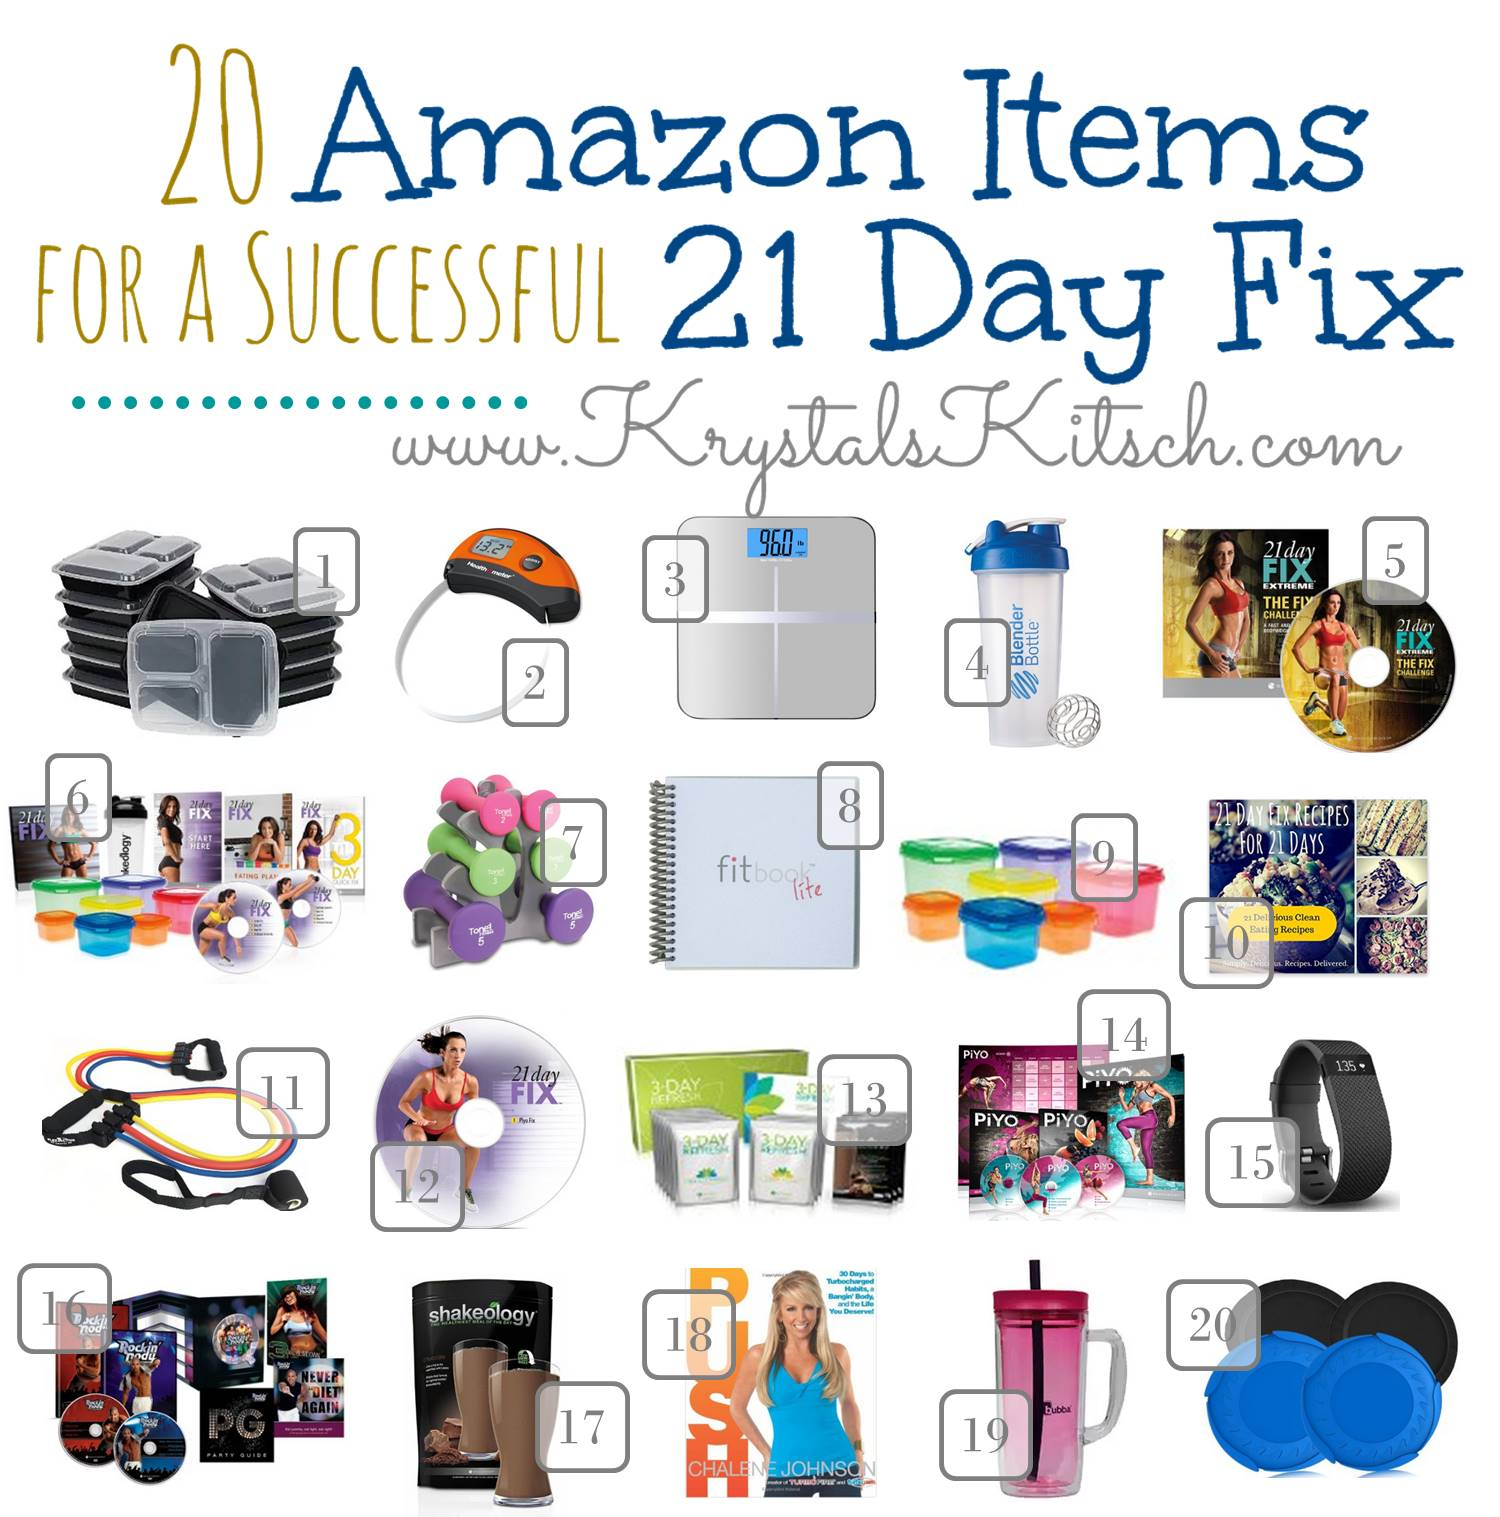 20 Amazon Items For a Successful 21 Day Fix